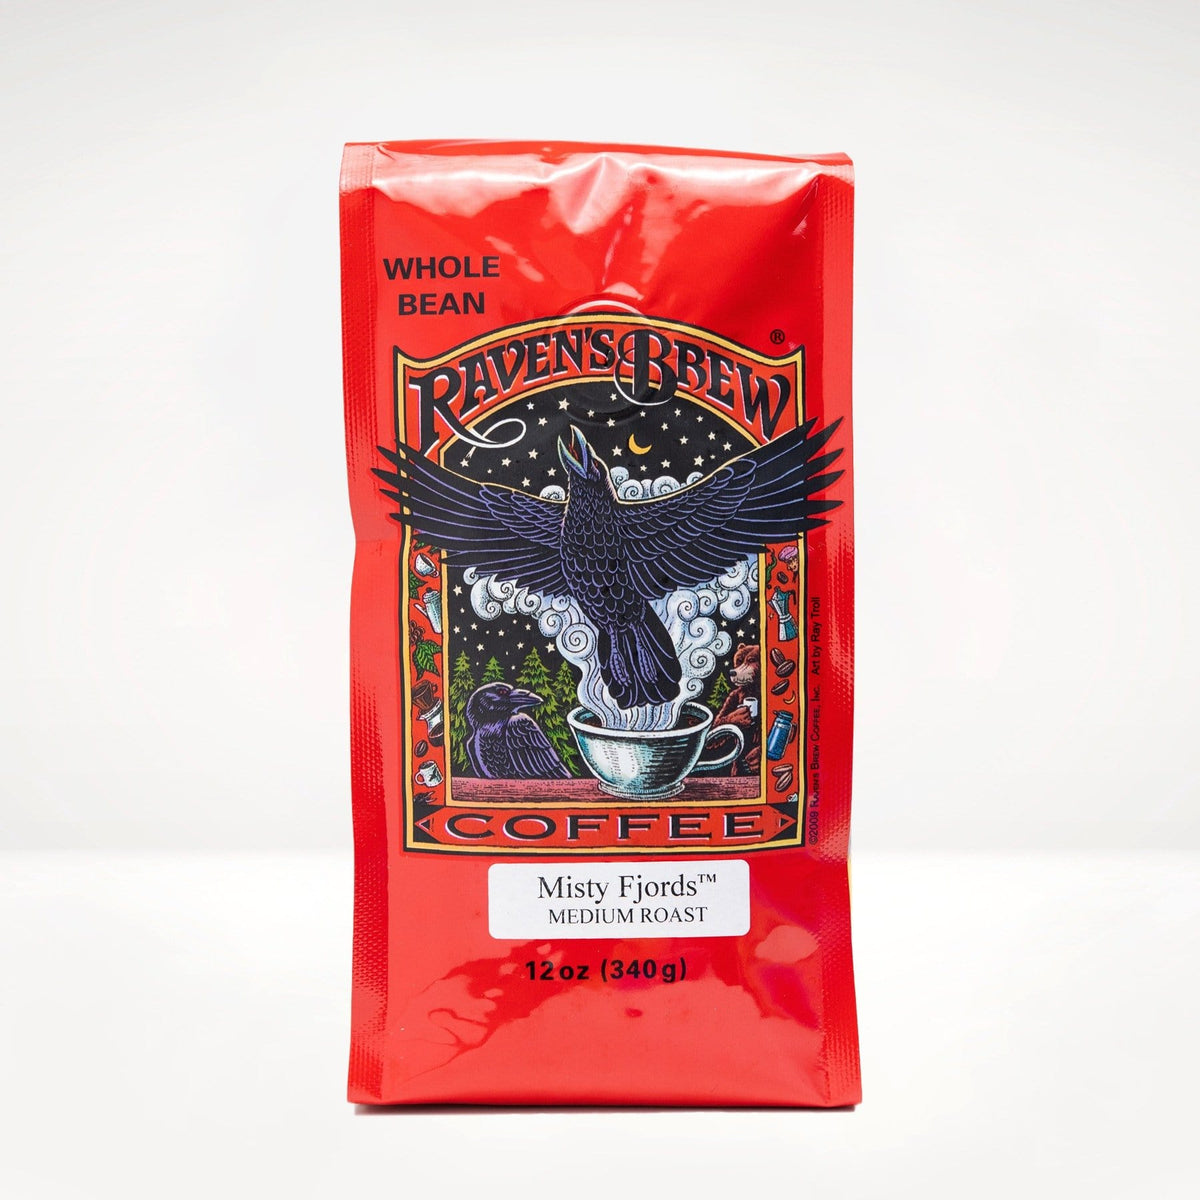 12oz Misty Fjords™ Coffee